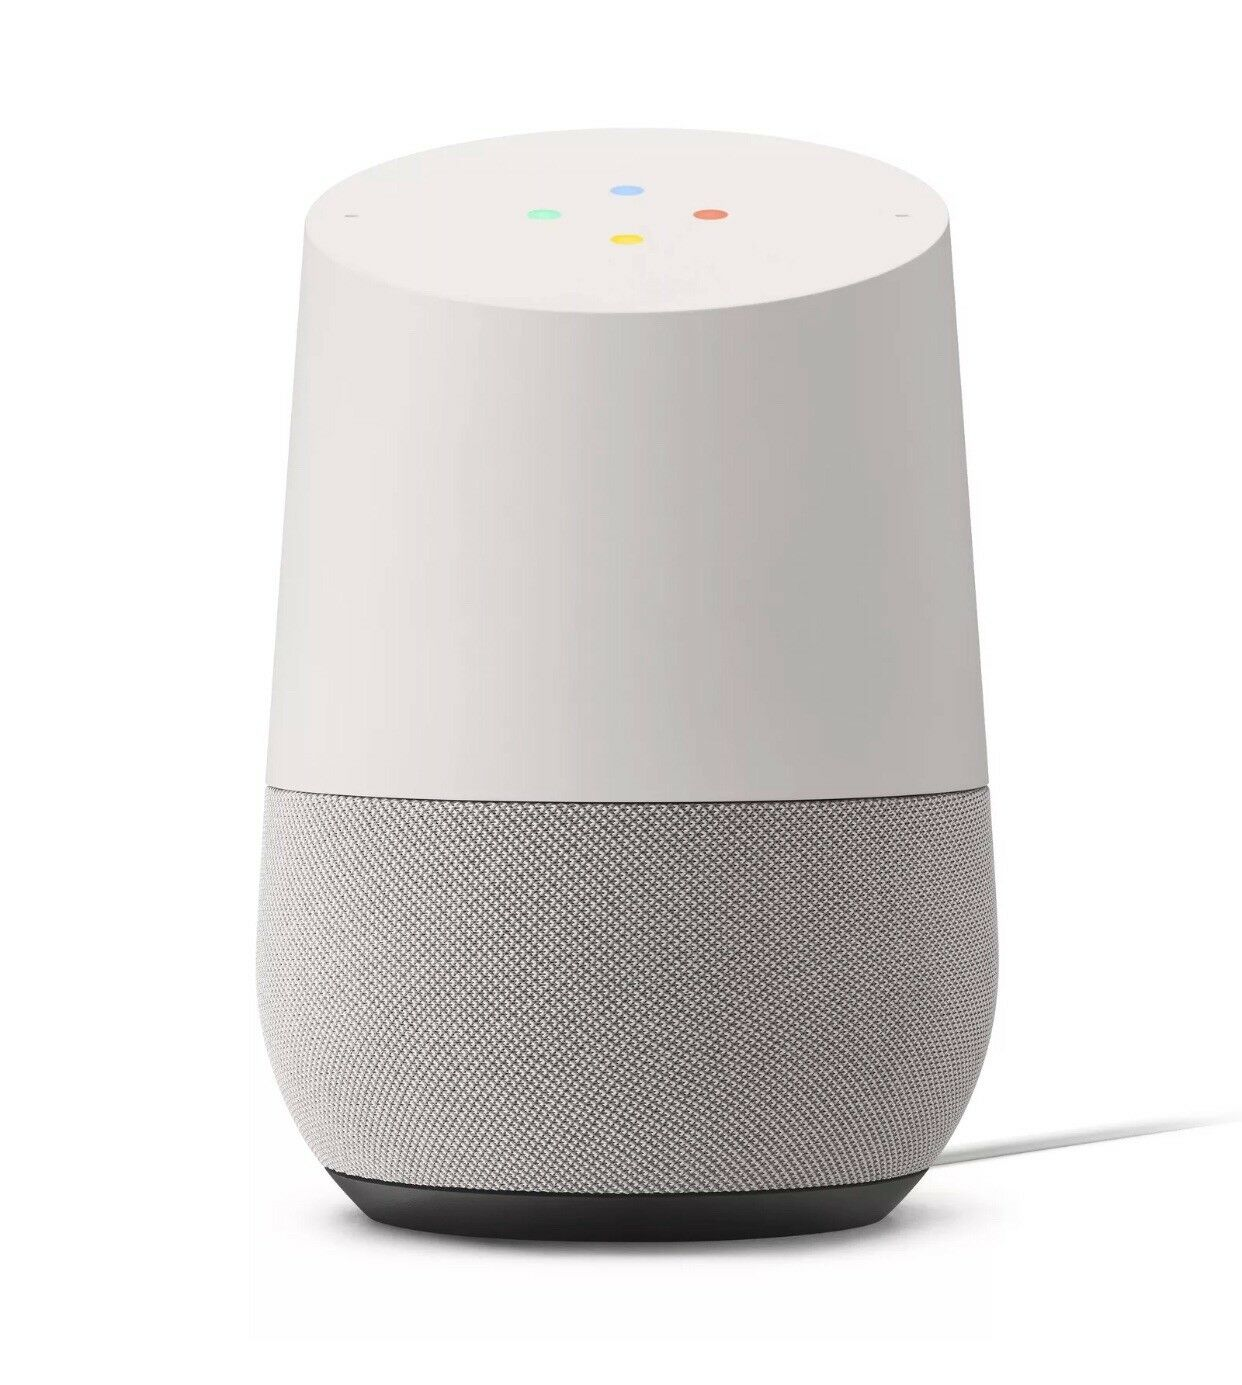 New Google Home Smart Assistant Speaker - White